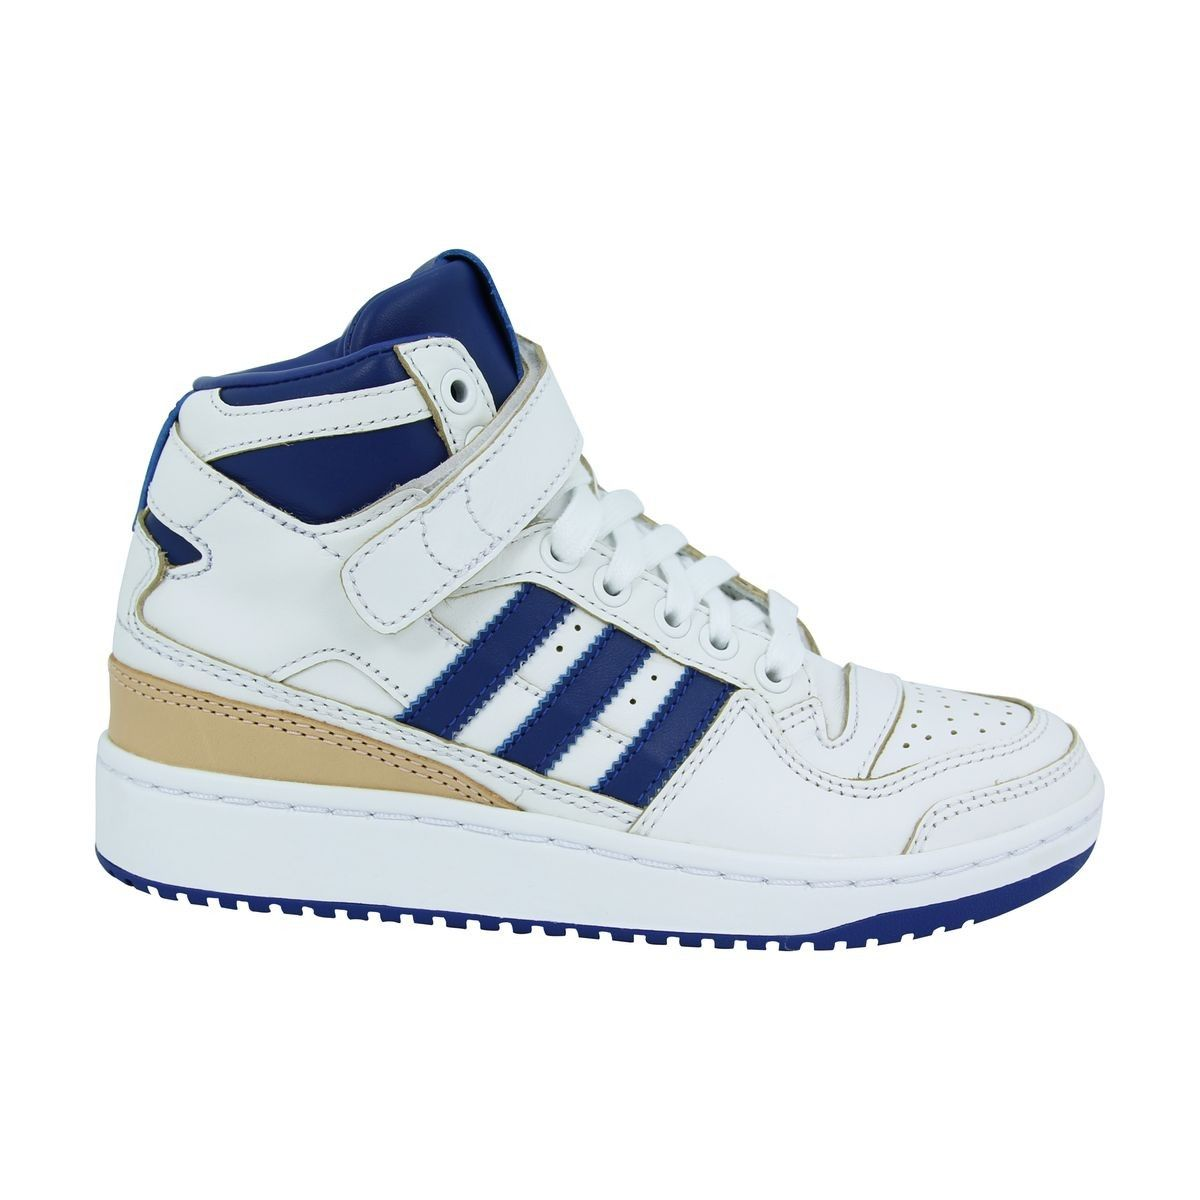 half off a8d41 96cf1 Baskets Montantes Cuir Forum Mid - Taille   36 38 39 40